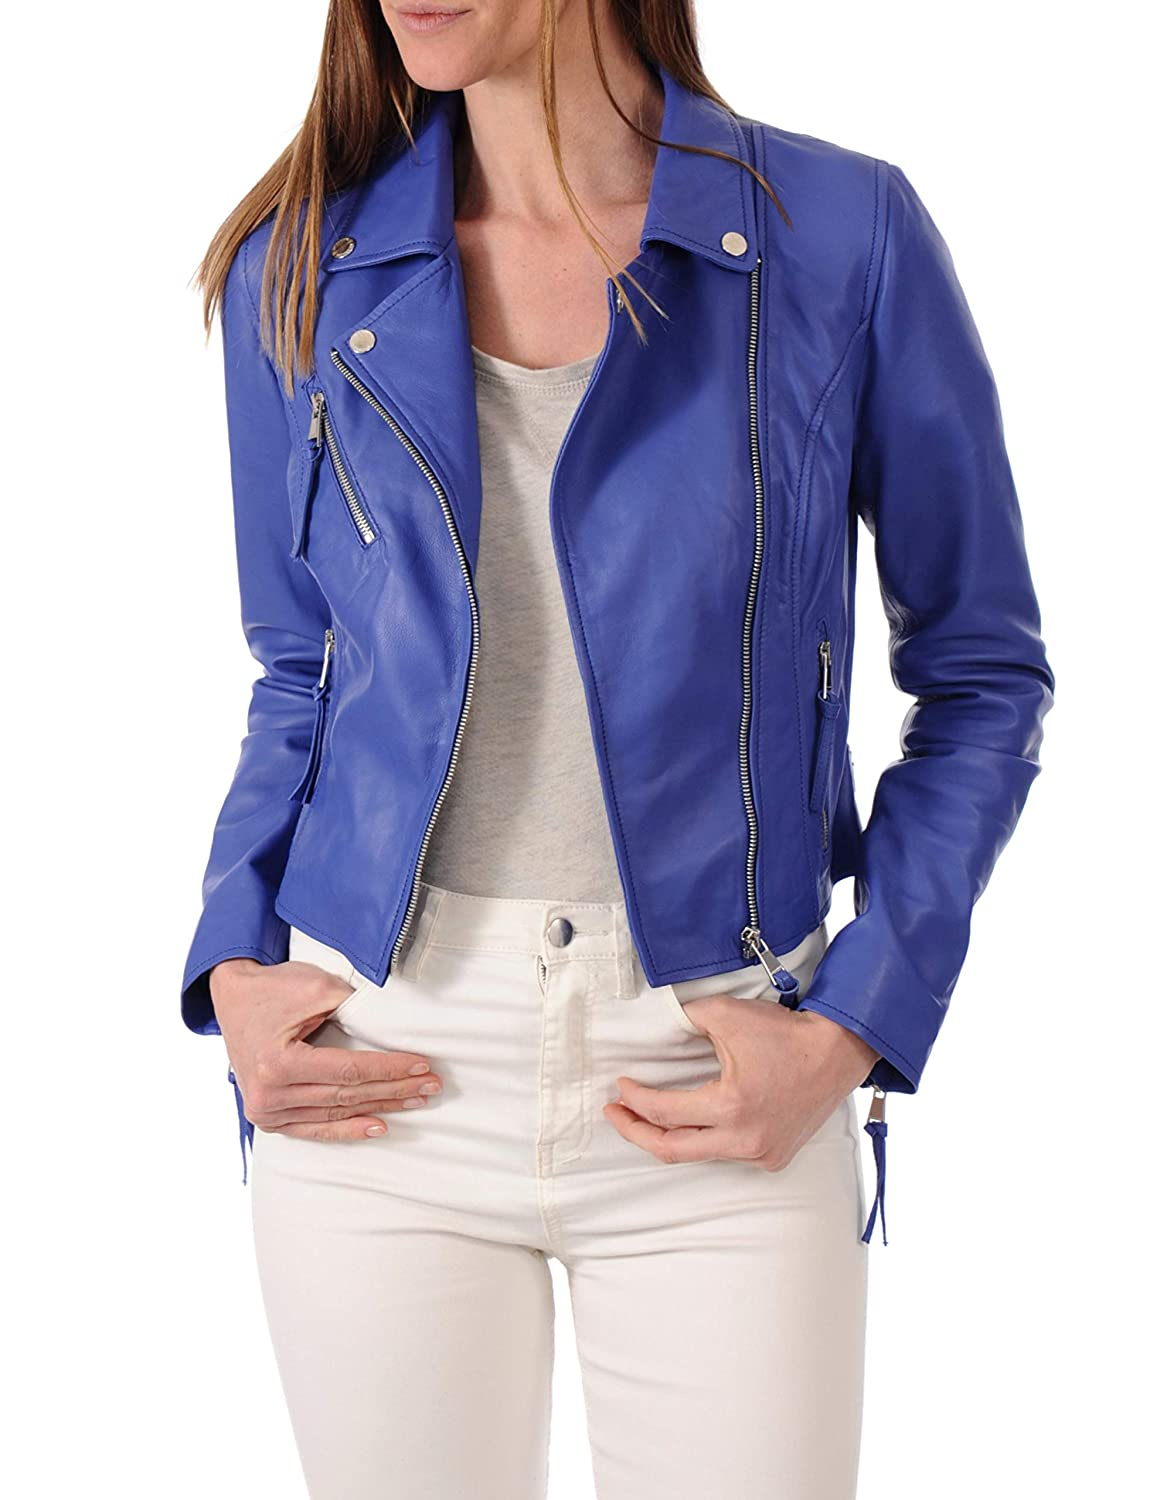 bluee111fc DOLLY LAMB 100% Leather Jacket for Women  Slim Fit & Quilted  Moto, Bomber, Biker Winter Casual Wear